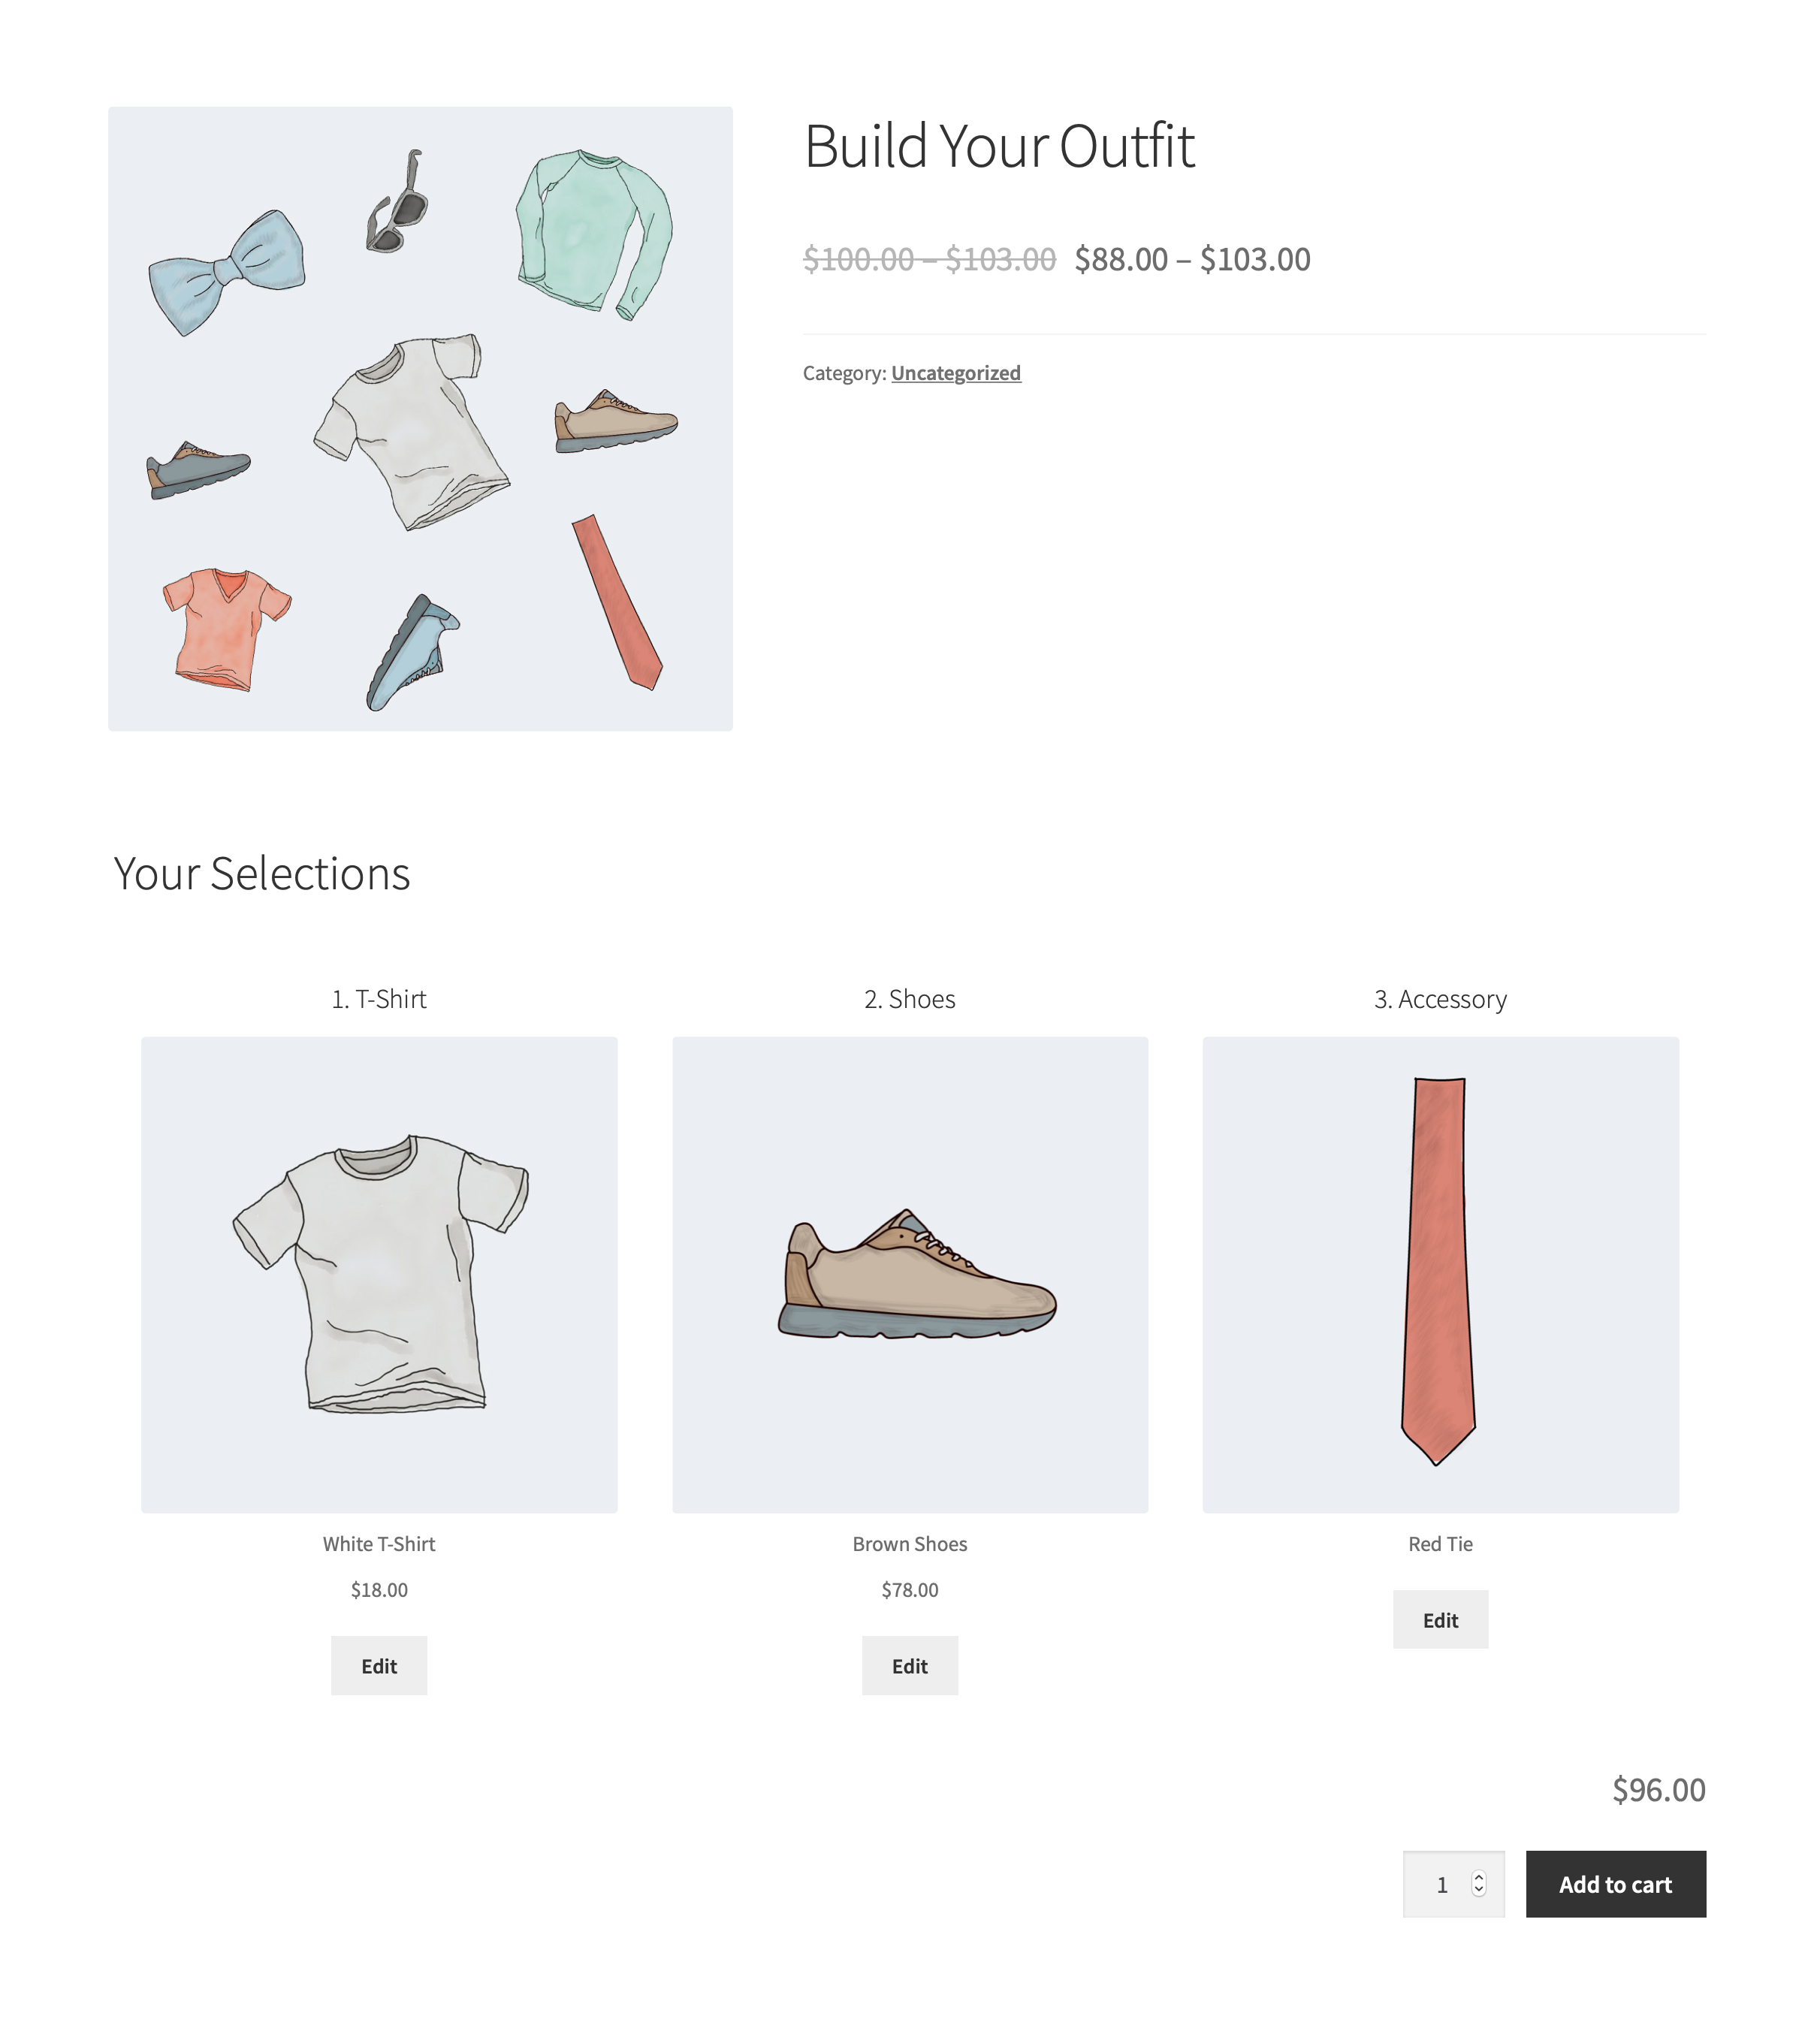 build-your-outfit